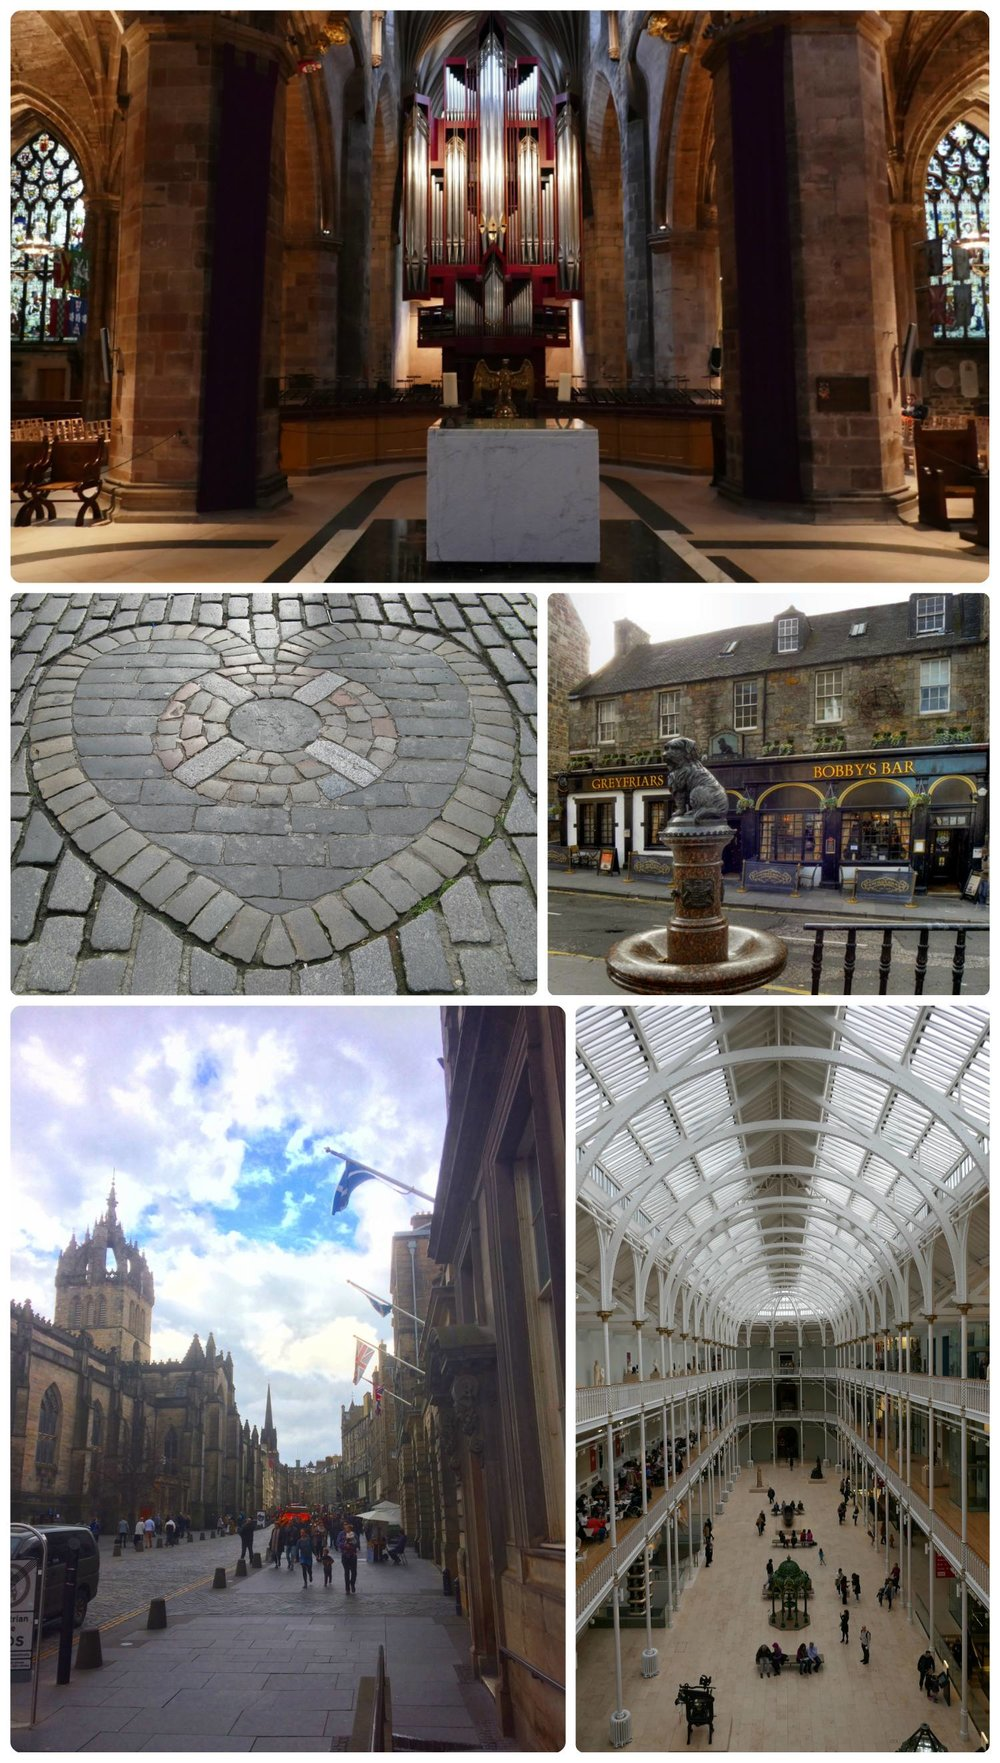 Top to bottom, left to right: Organ in St. Giles' Cathedral, Heart of Midlothian, Greyfriars Bobby Memorial Statue, Royal Mile in front of St. Giles' Cathedral, interior of National Museum of Scotland.